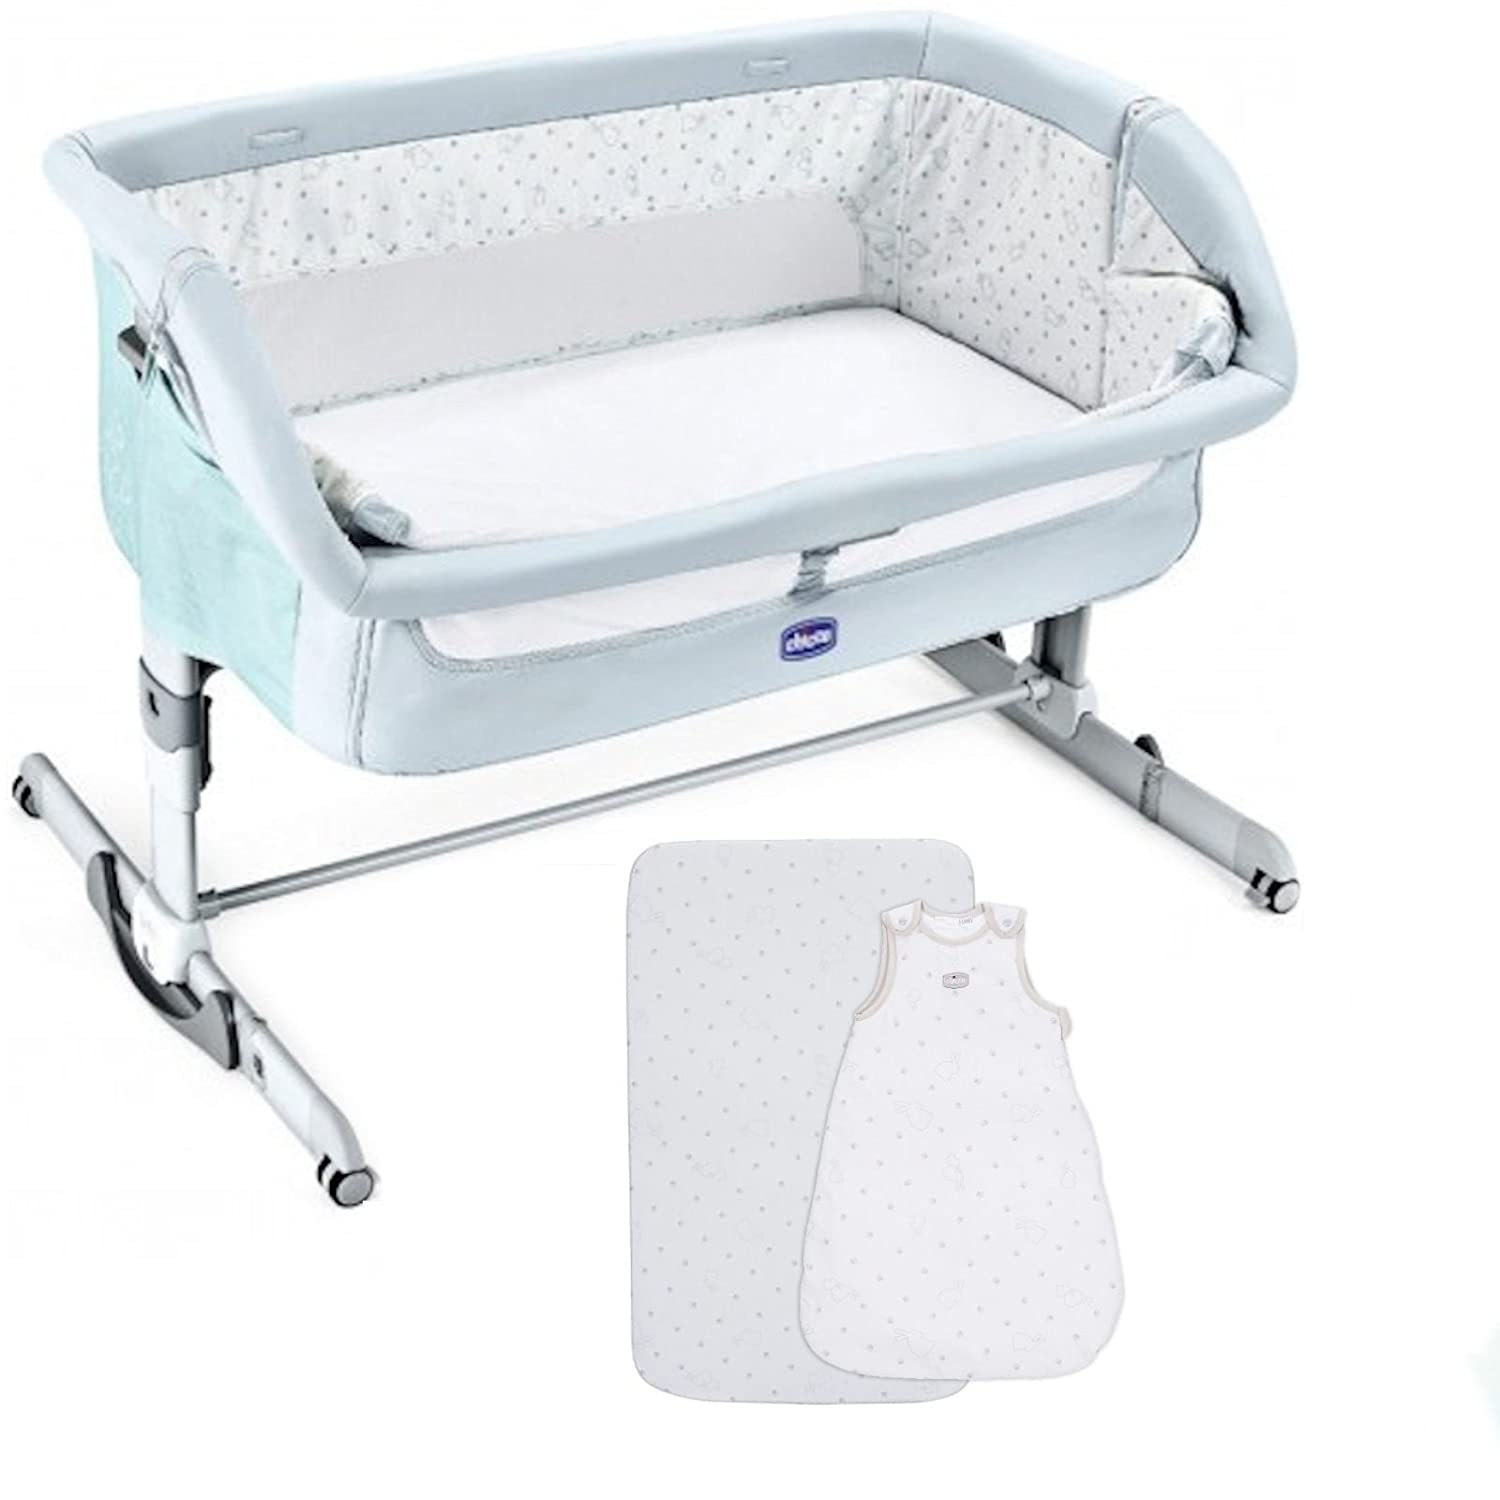 Chicco Next 2 Me Dream Crib With Chicco 1 Fitted Sheet and 1 Sleeping Bag - Fairytale Chicco - 4baby